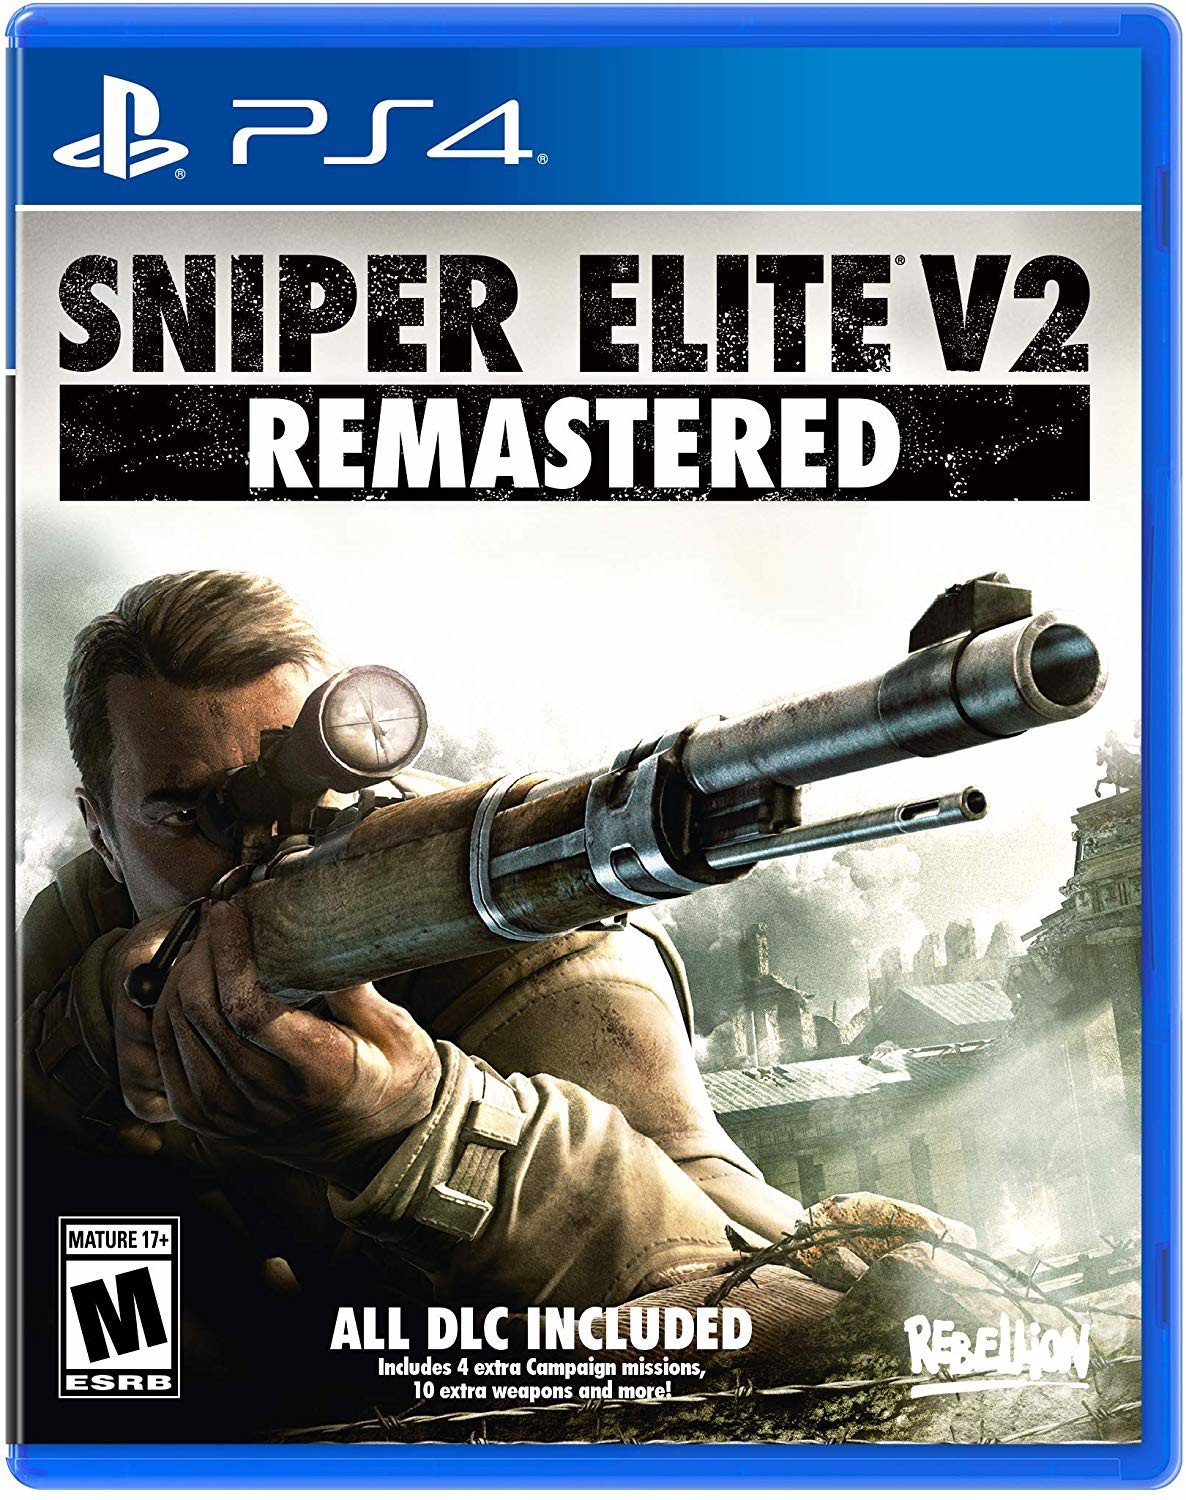 721 - Sniper Elite V2 Remastered